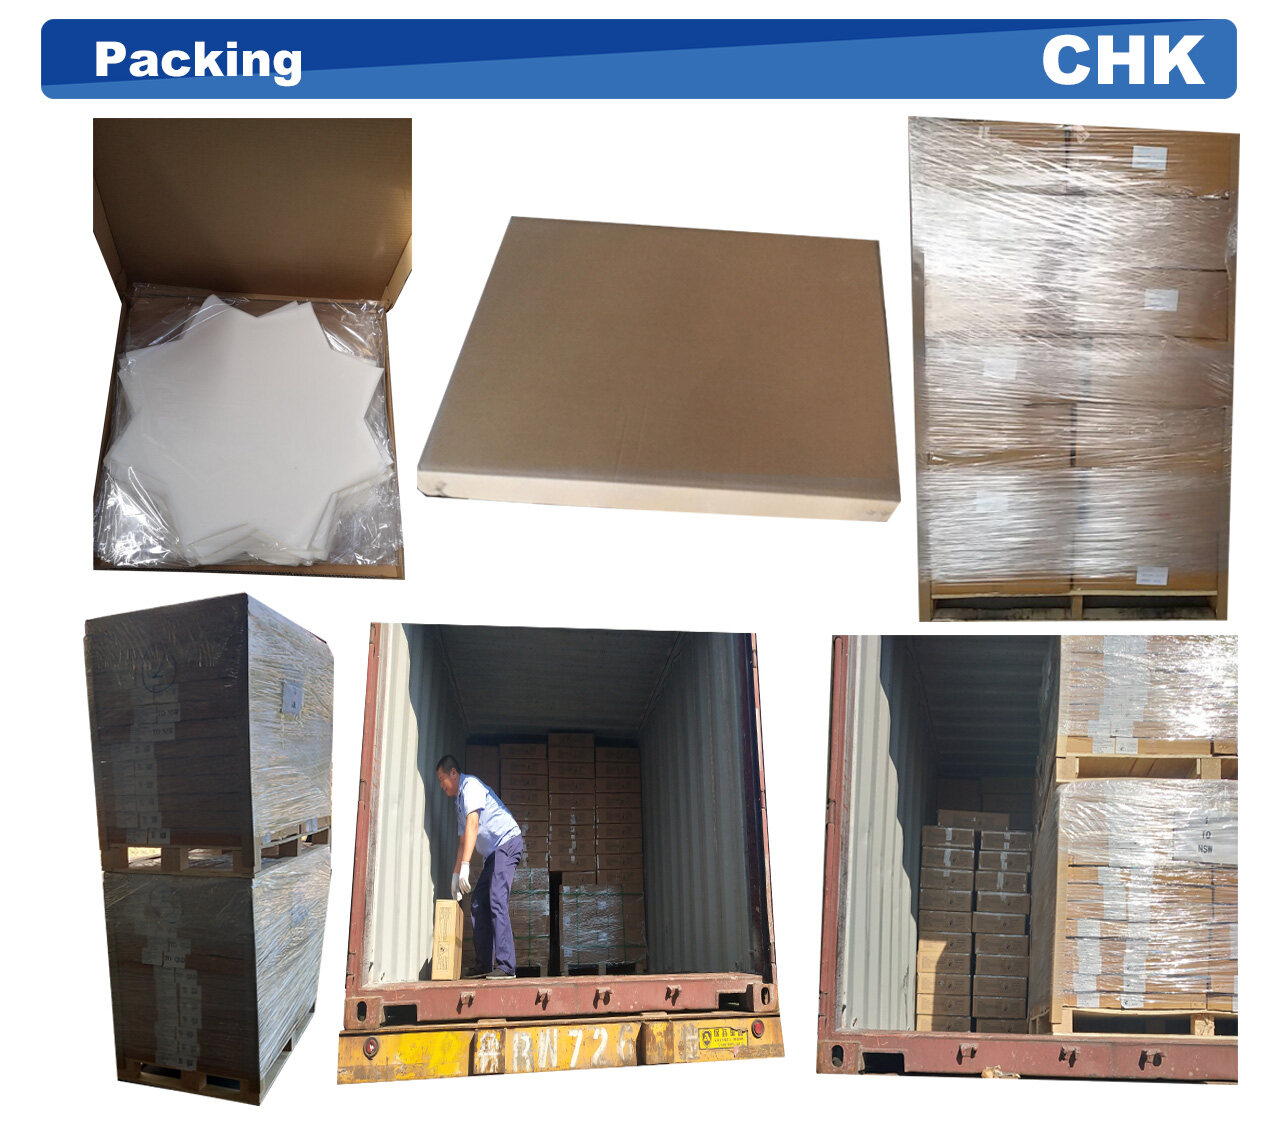 CHK Packing high quality PE bag for sandwich package/wicket bag for ice CHK Packing high quality PE bag for sandwich package/wicket bag for ice